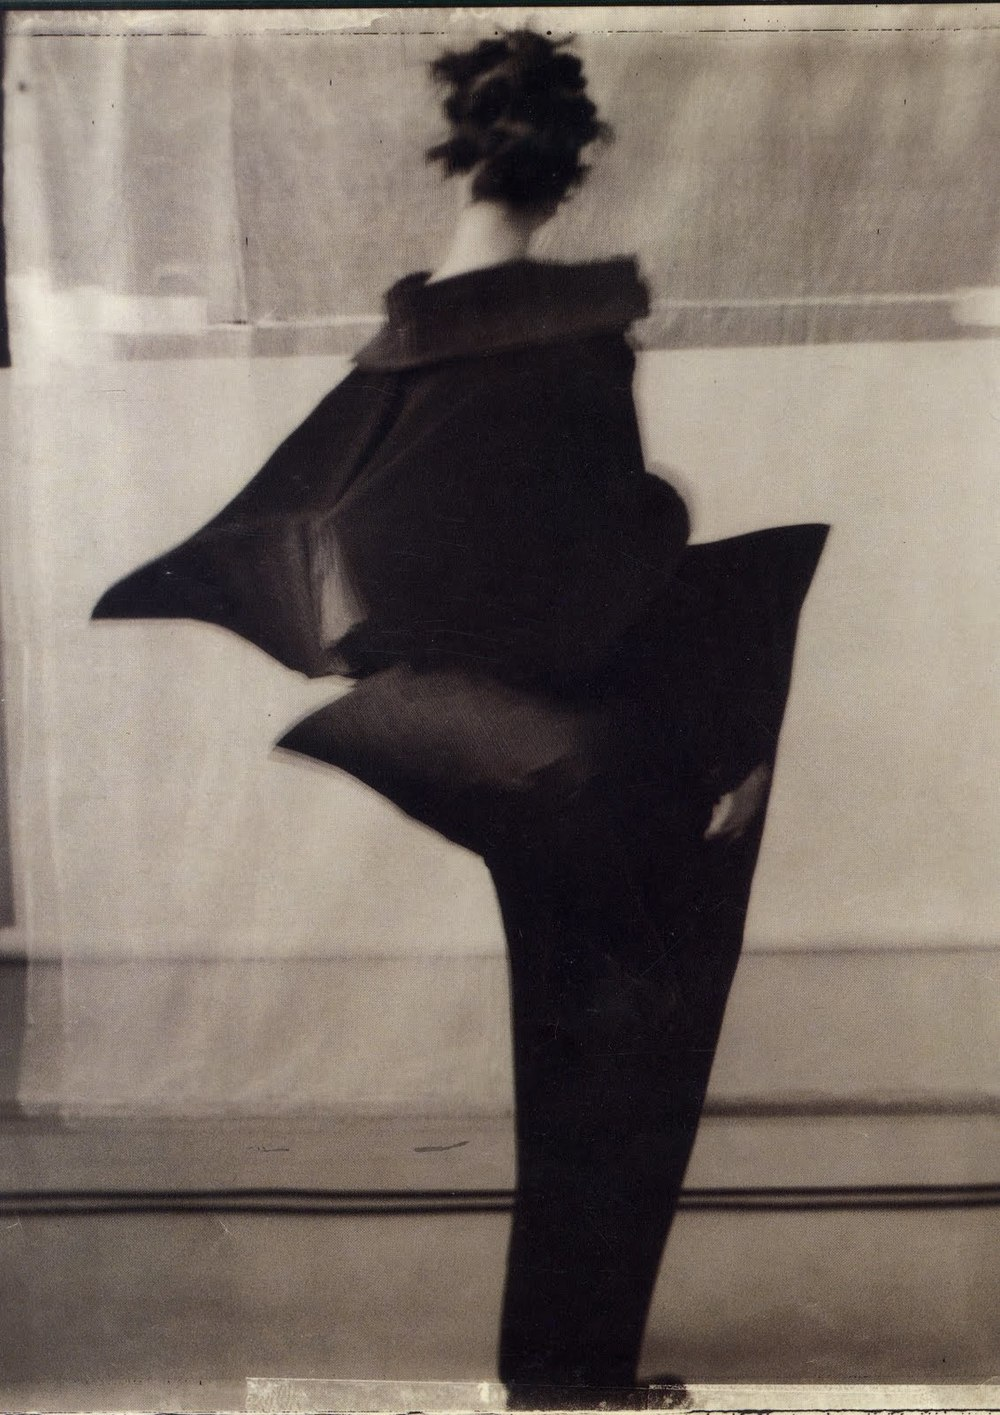 themusewithinthemusewithout: ~Elusive yet definite~ Issey Miyake, 1992. Photo by Sarah Moon.